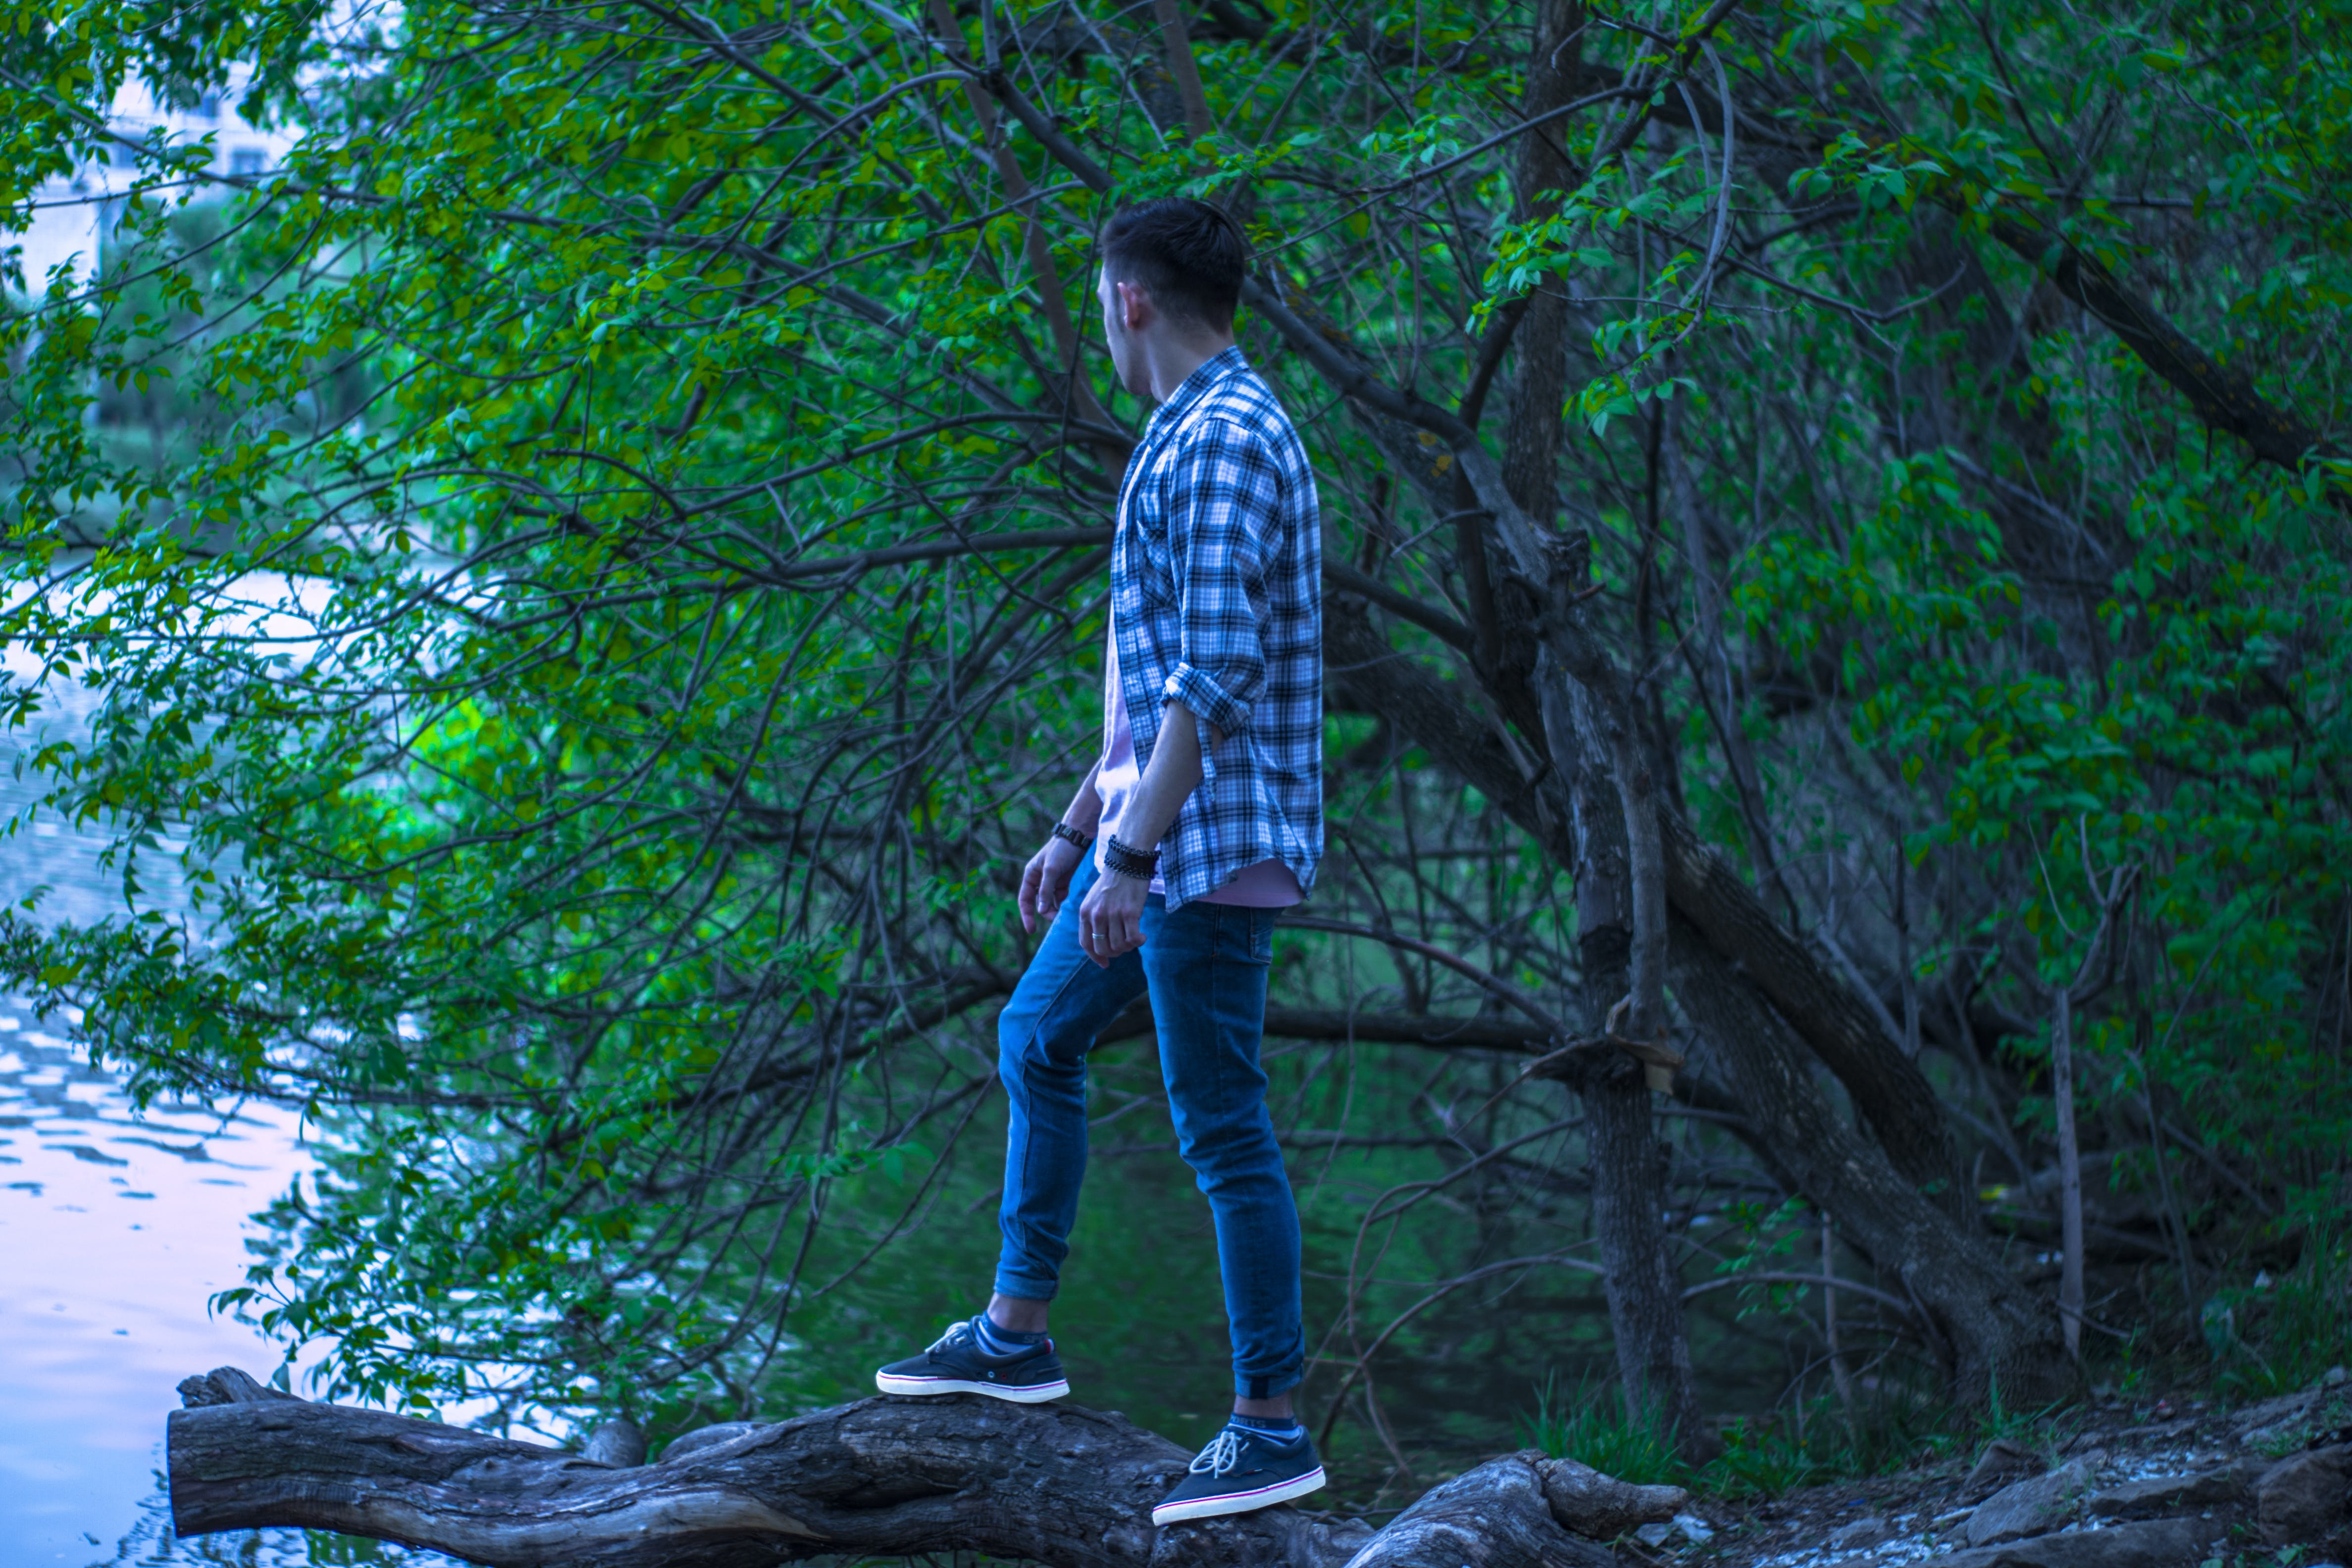 Man in Blue and Black Gingham Button-up Top Standing on Brown Wood Log in Forest